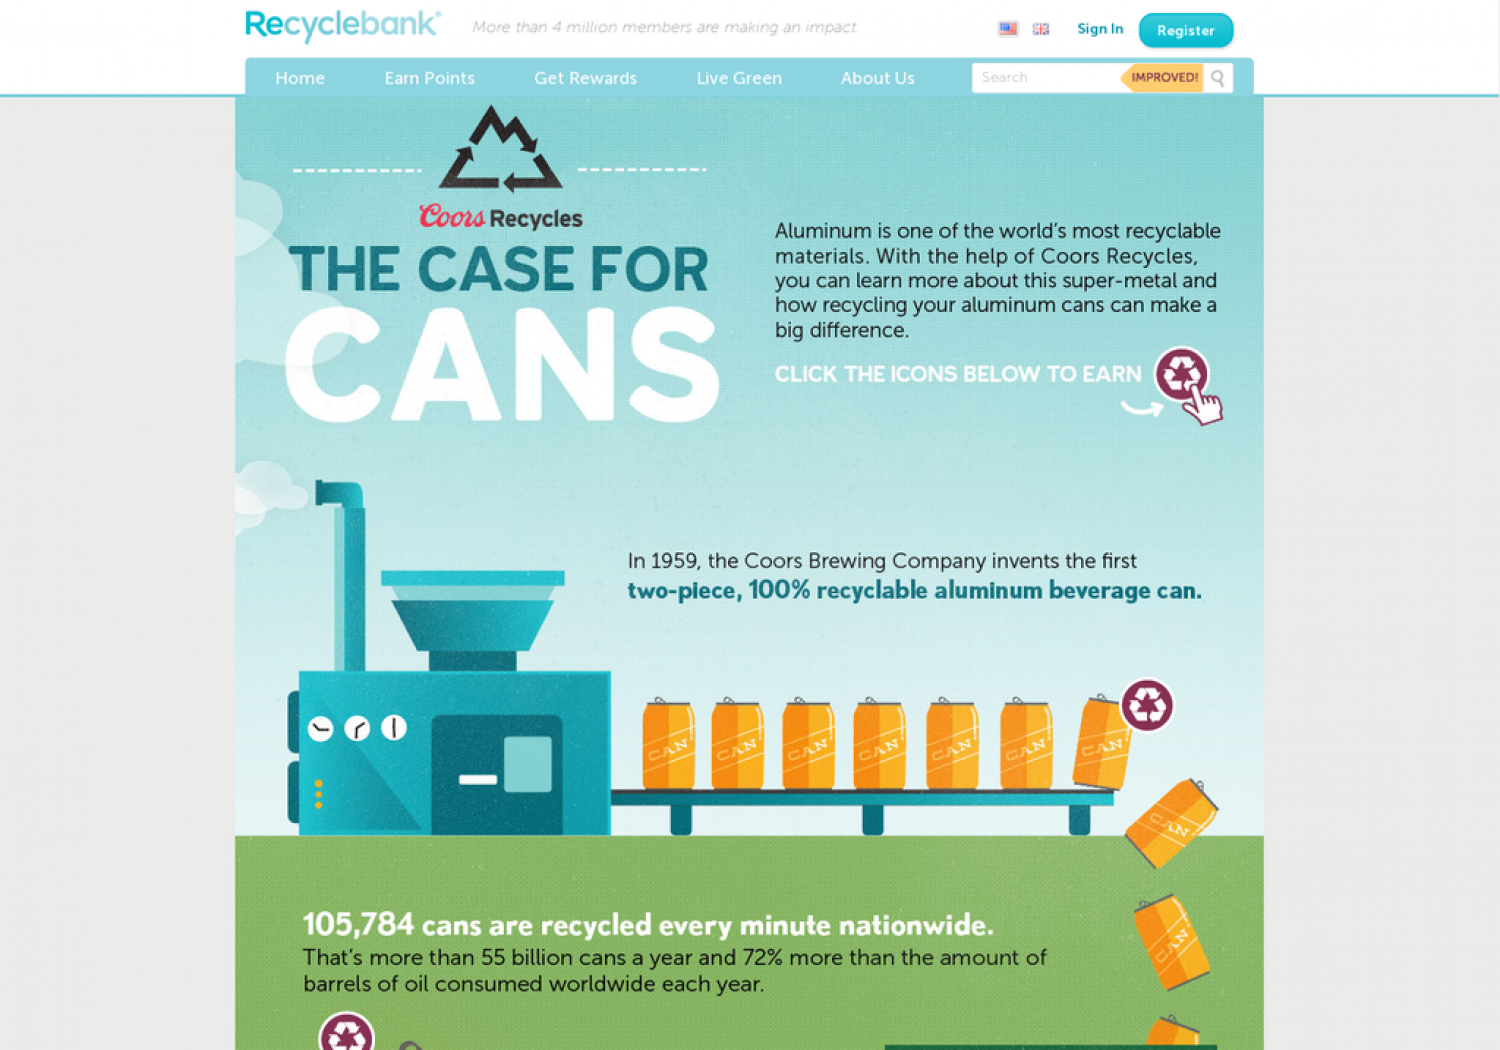 The Case for Cans Infographic